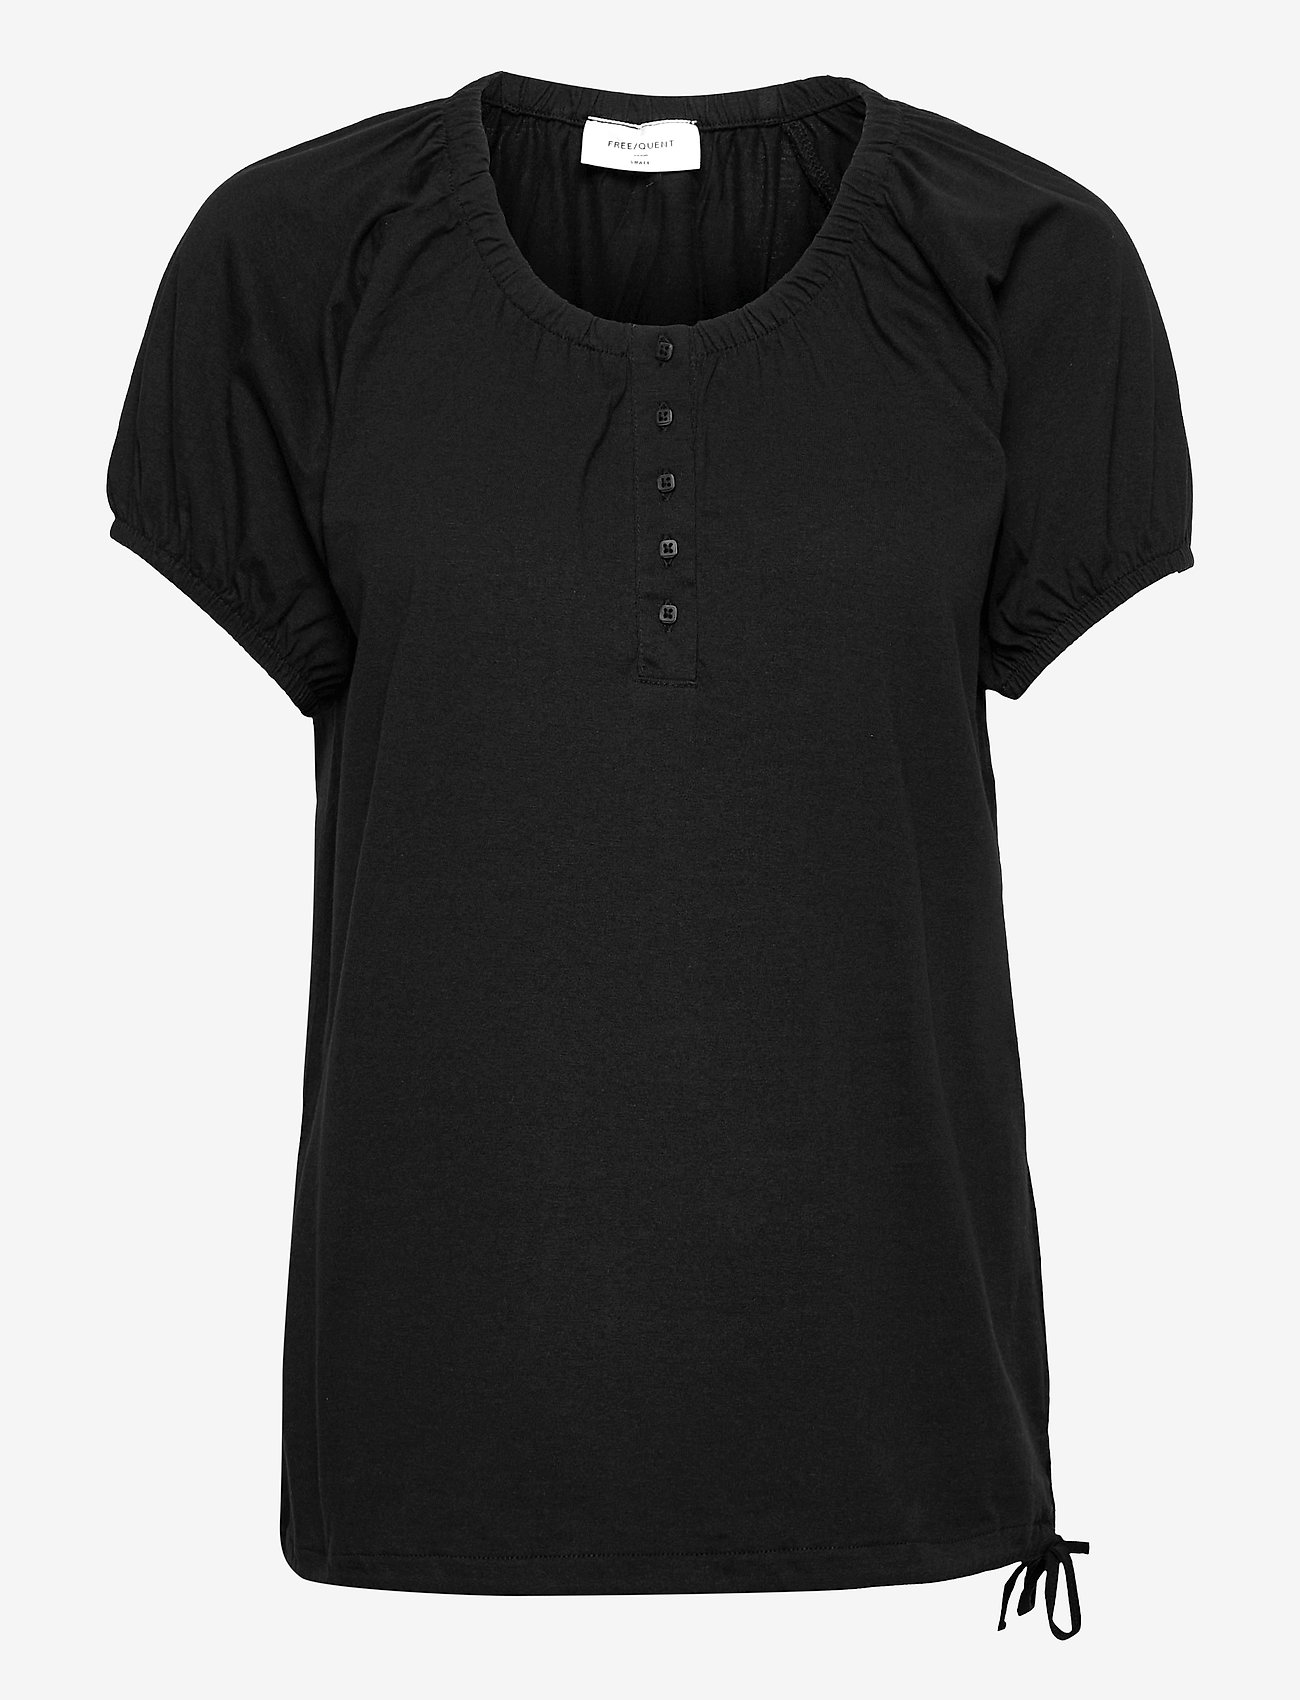 FREE/QUENT - BETINA-SS-SOLID - t-shirts - black - 0